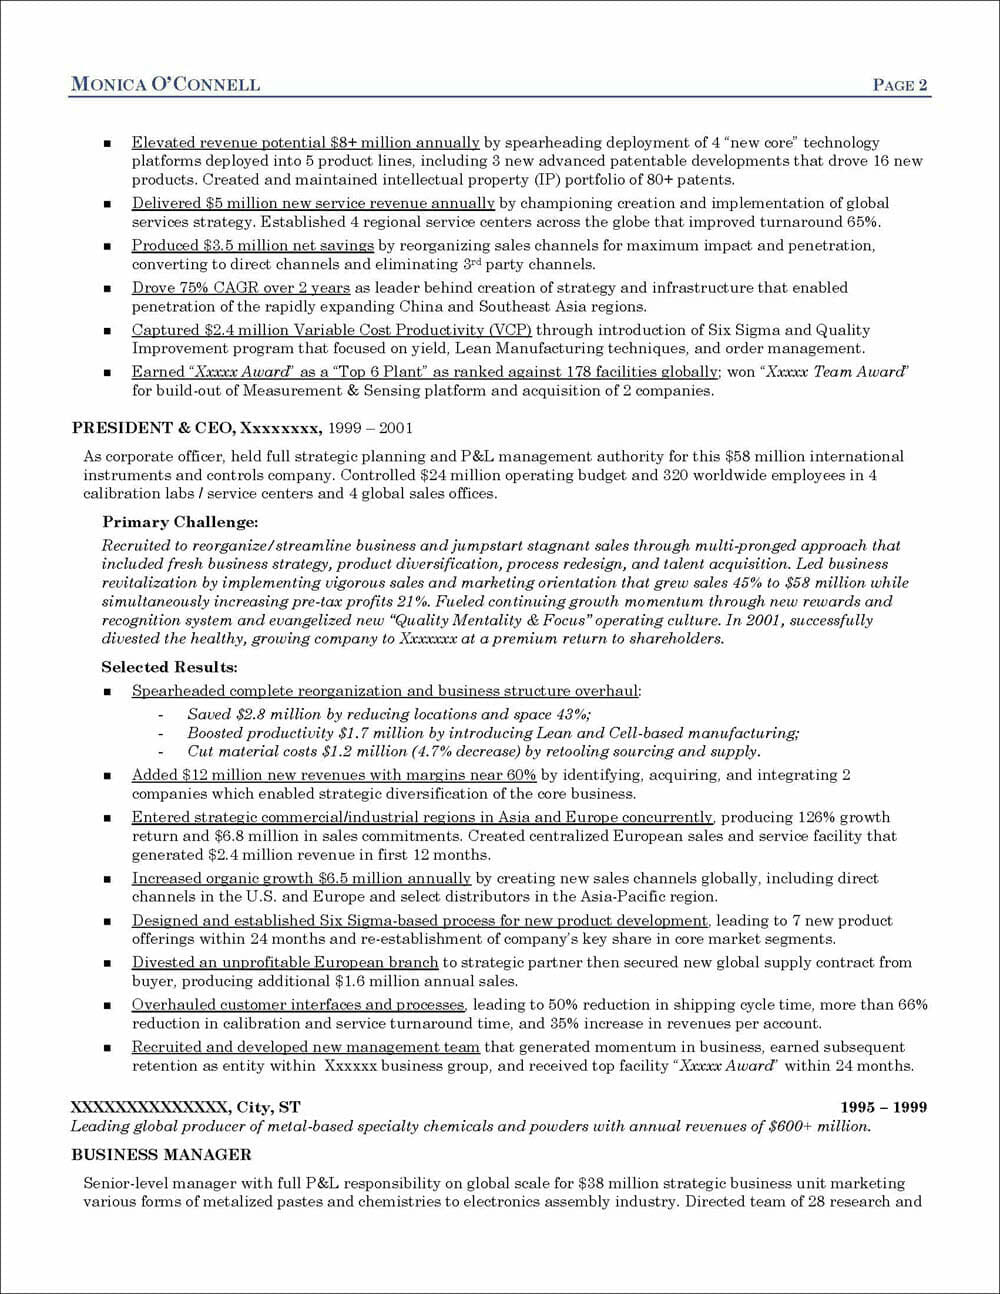 Sample Executive Resume for a President and CEO Page 2